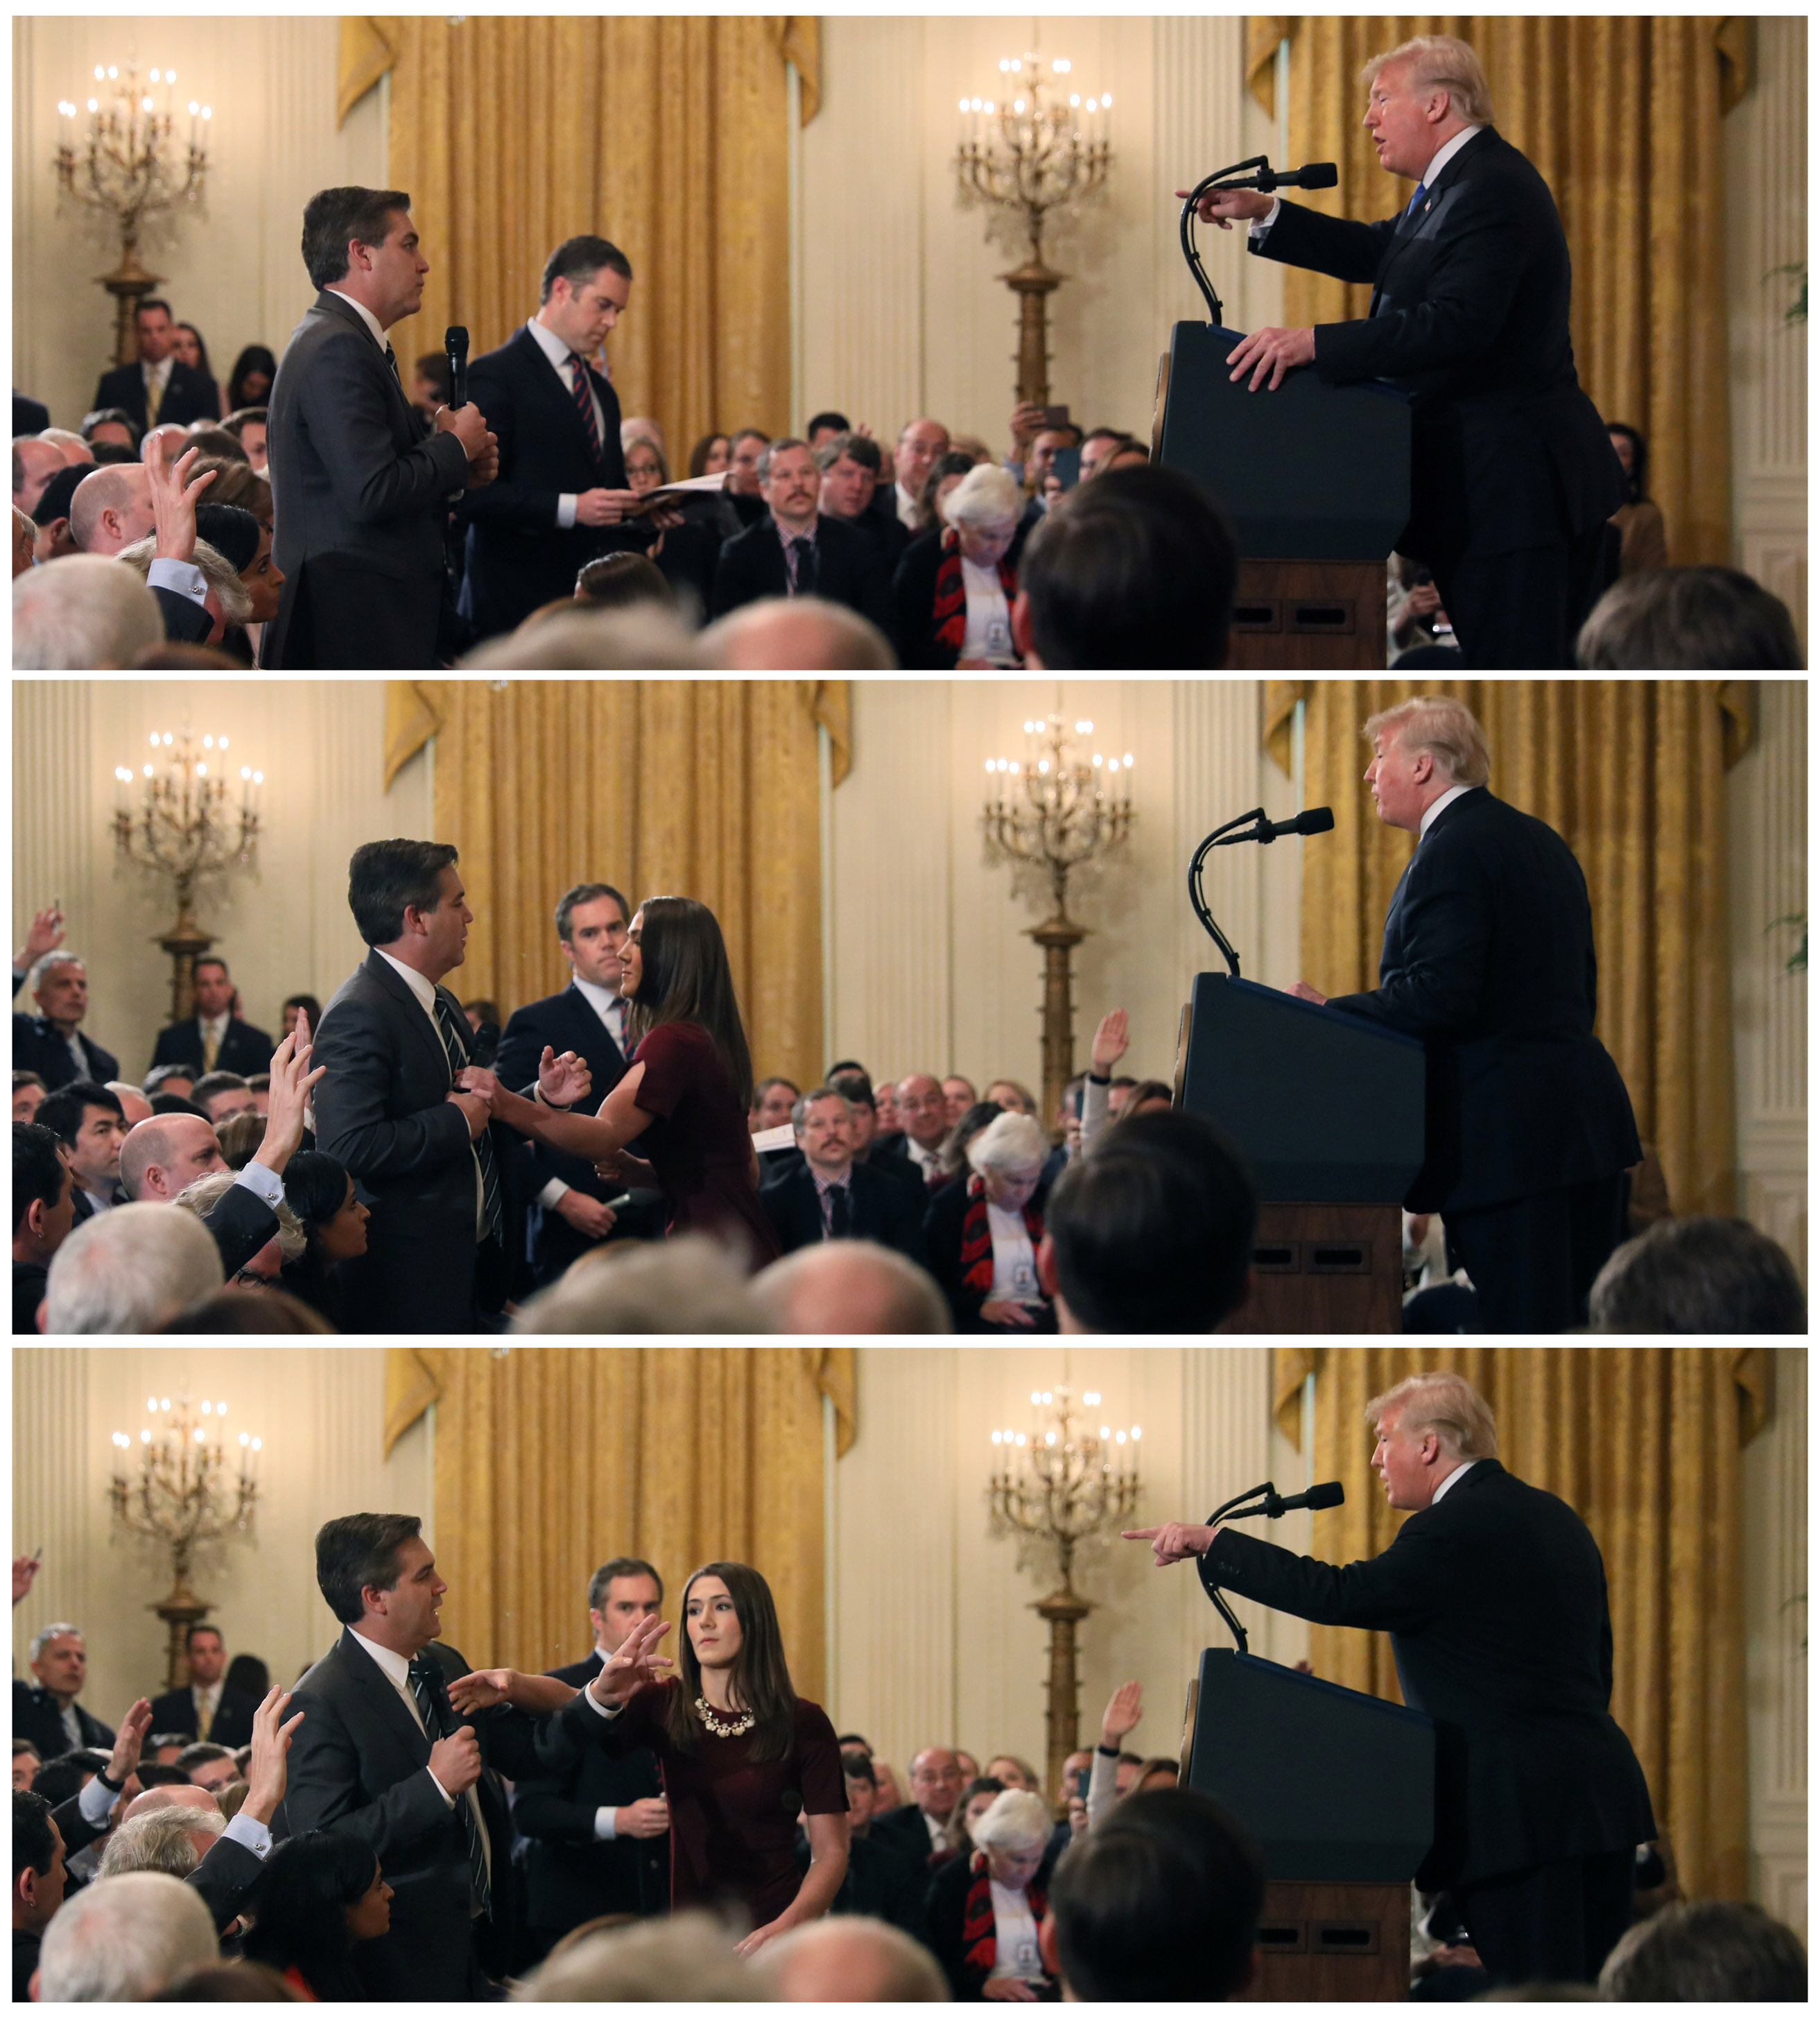 A White House staff member reaches for the microphone held by CNN's Jim Acosta as he questions US President Donald Trump